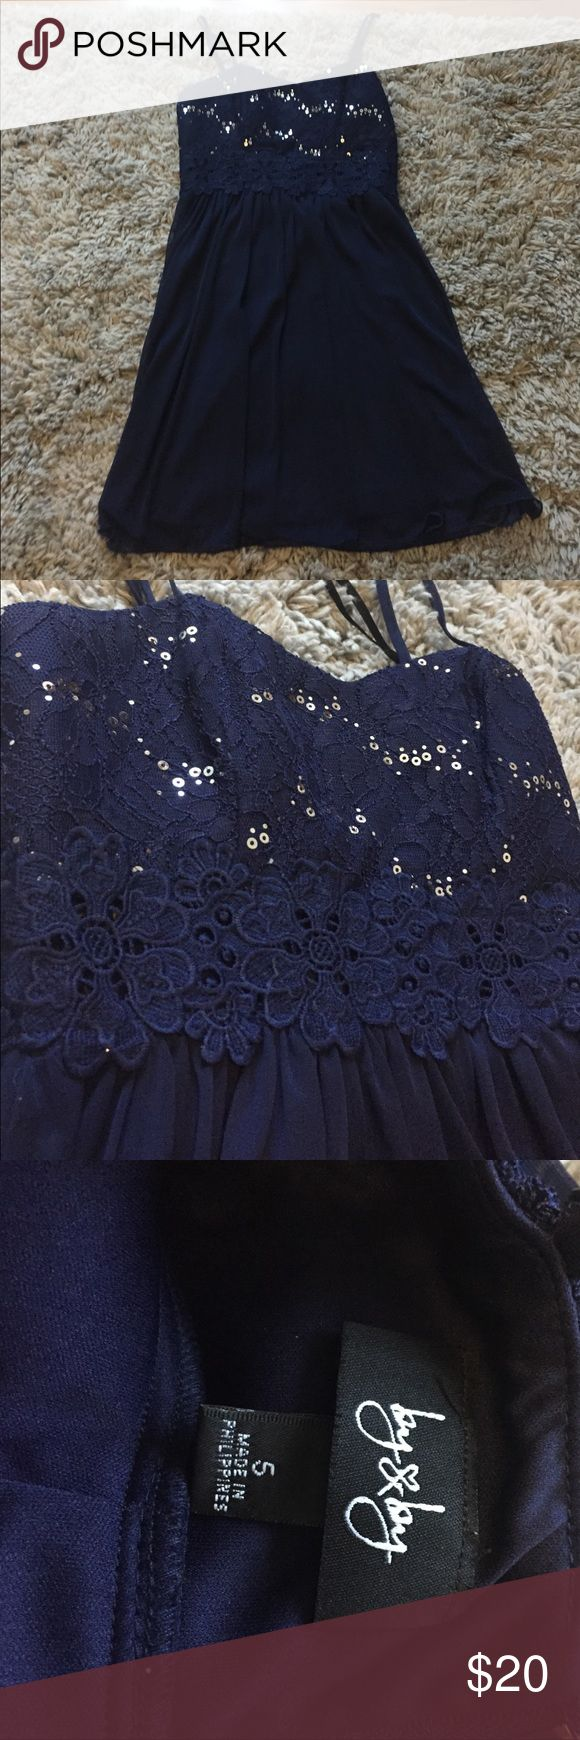 Navy blue dress This was my homecoming dress my sophomore year! I loved it! Dresses Mini